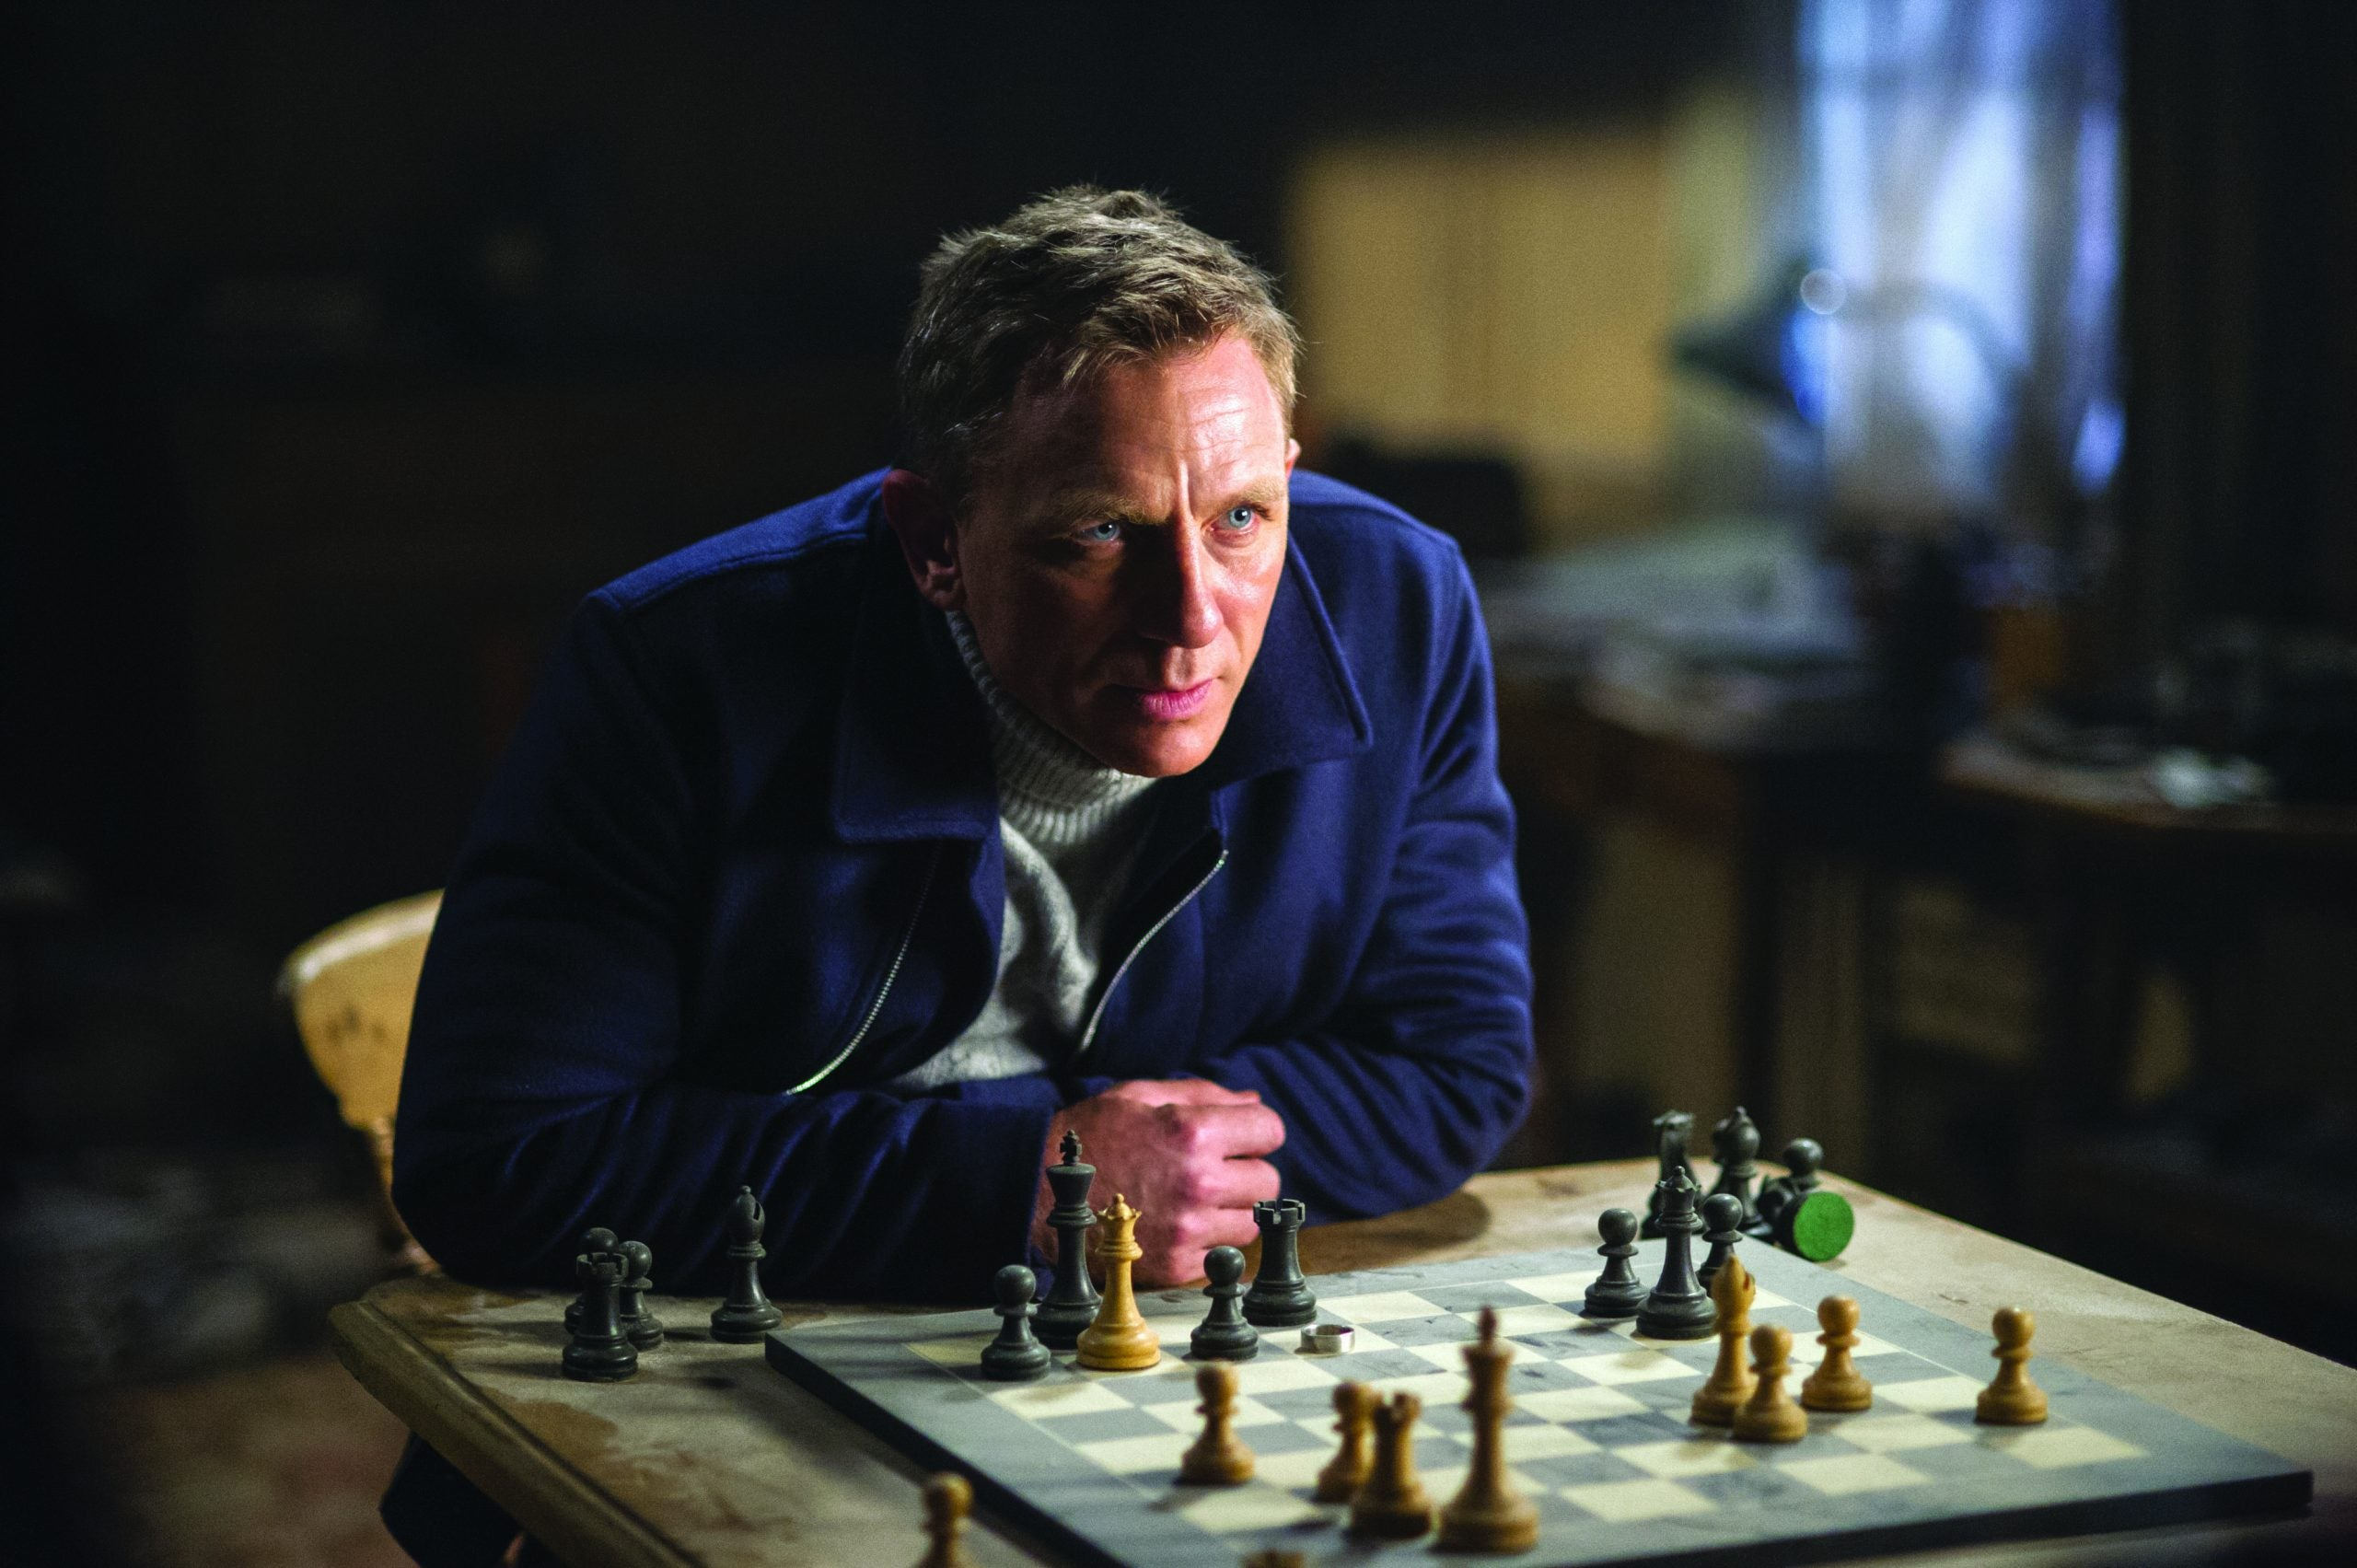 Playing the endgame: is Daniel Craig making his final moves as James Bond in Spectre?